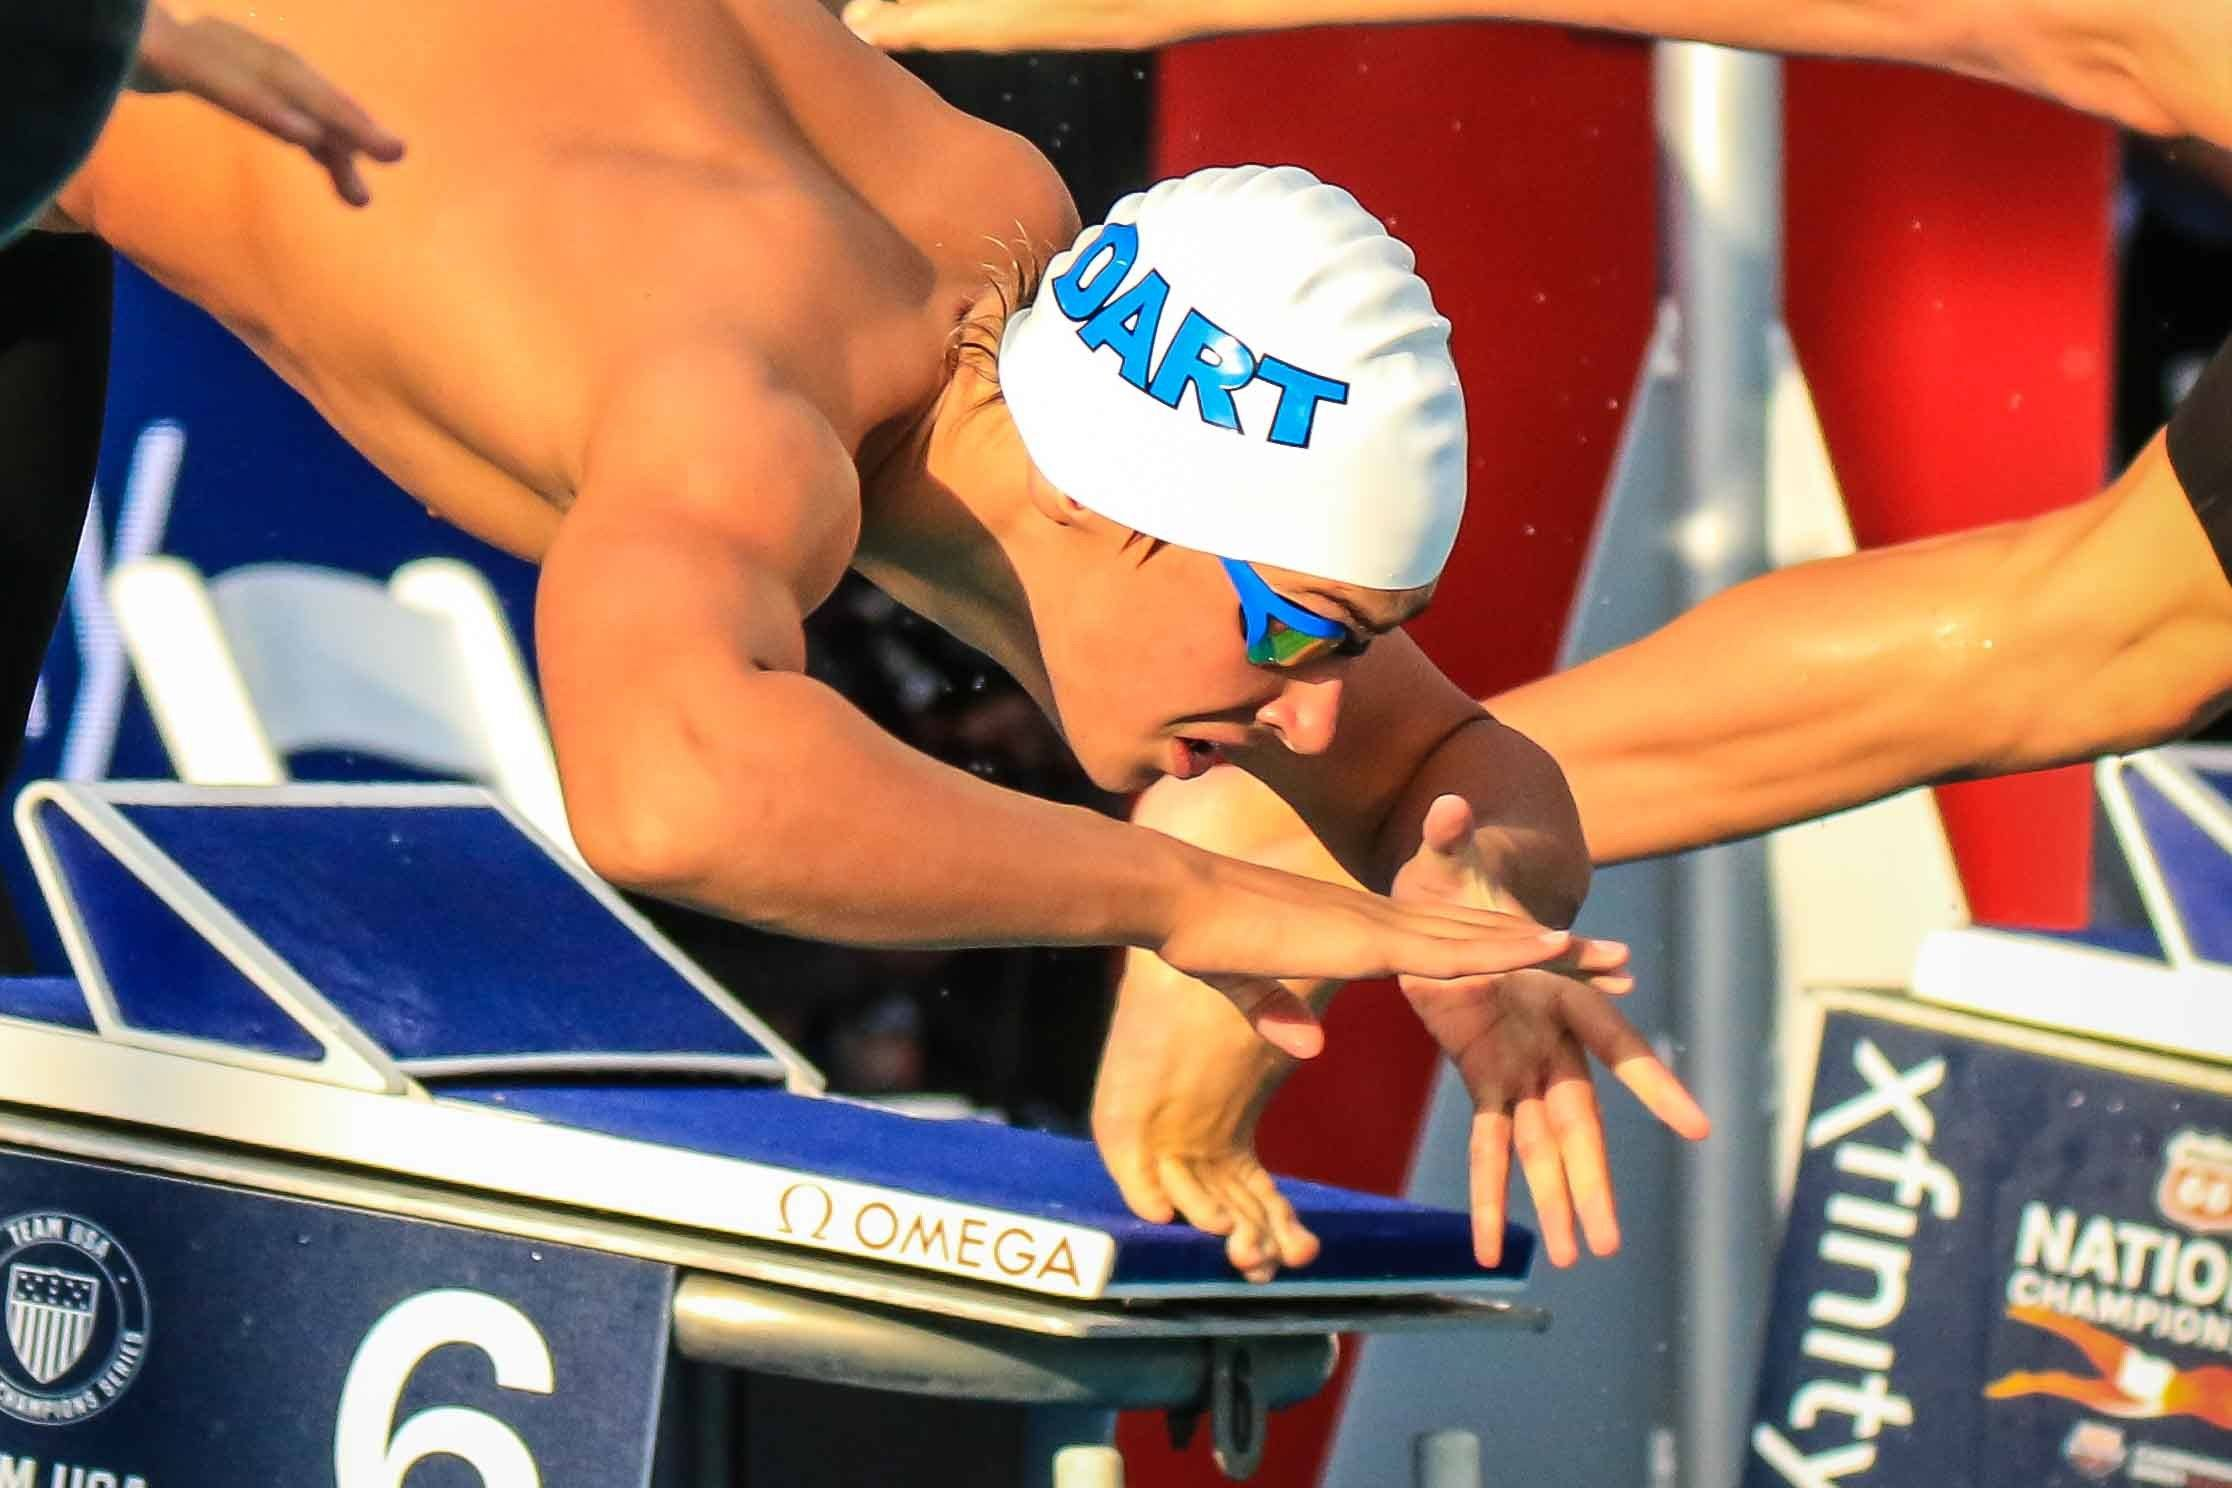 Luca Urlando Hits New Lifetime 200 Free Best for Third Time in 2019